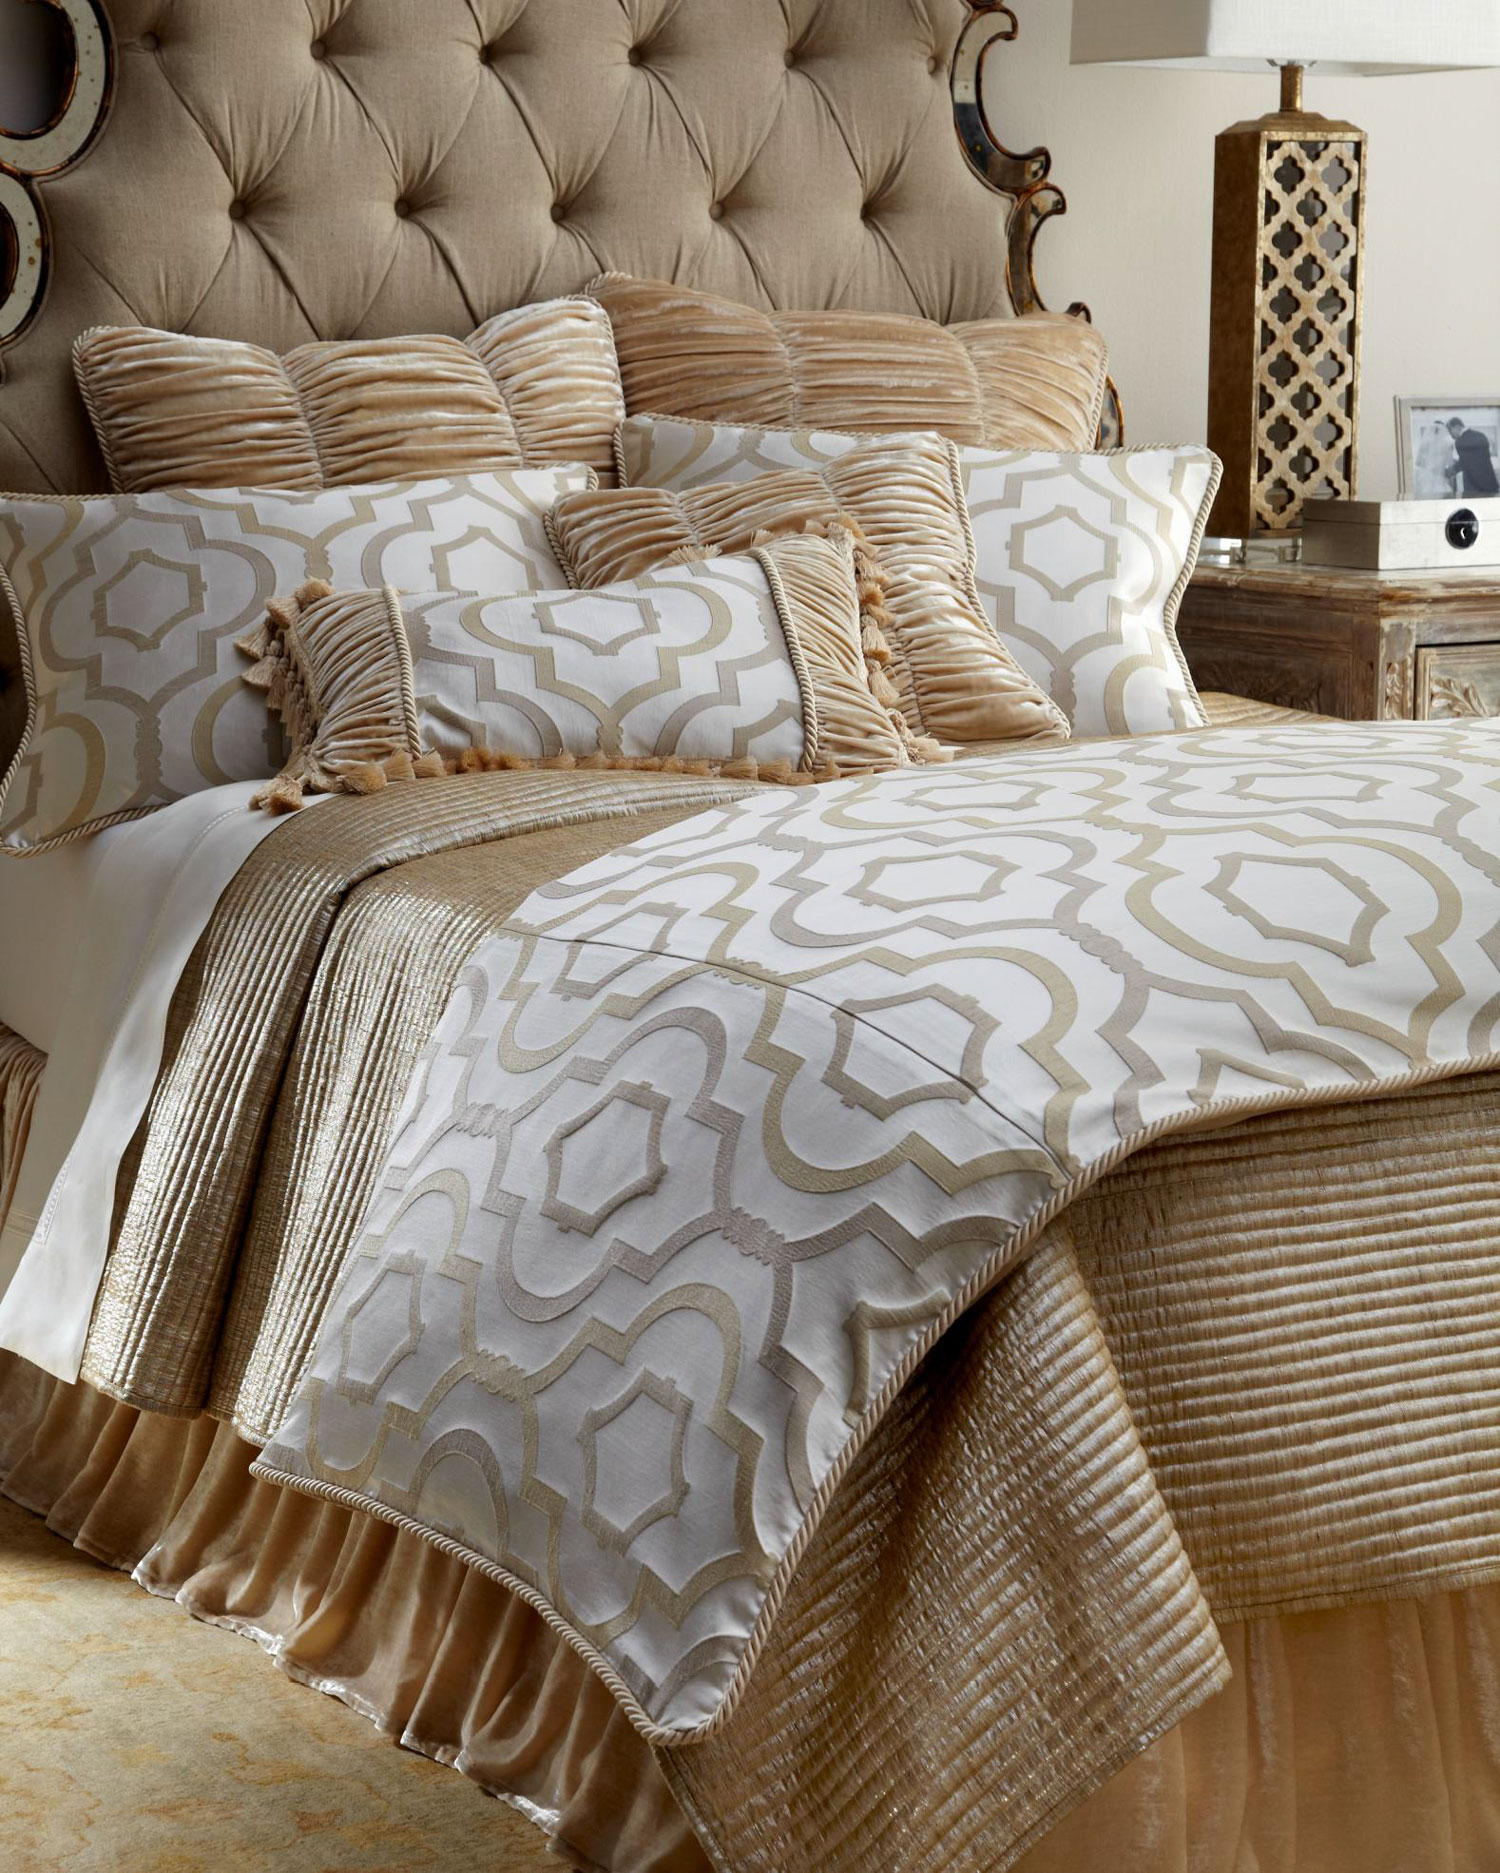 Constantine By Isabella Luxury Linens Beddingsuperstore Com